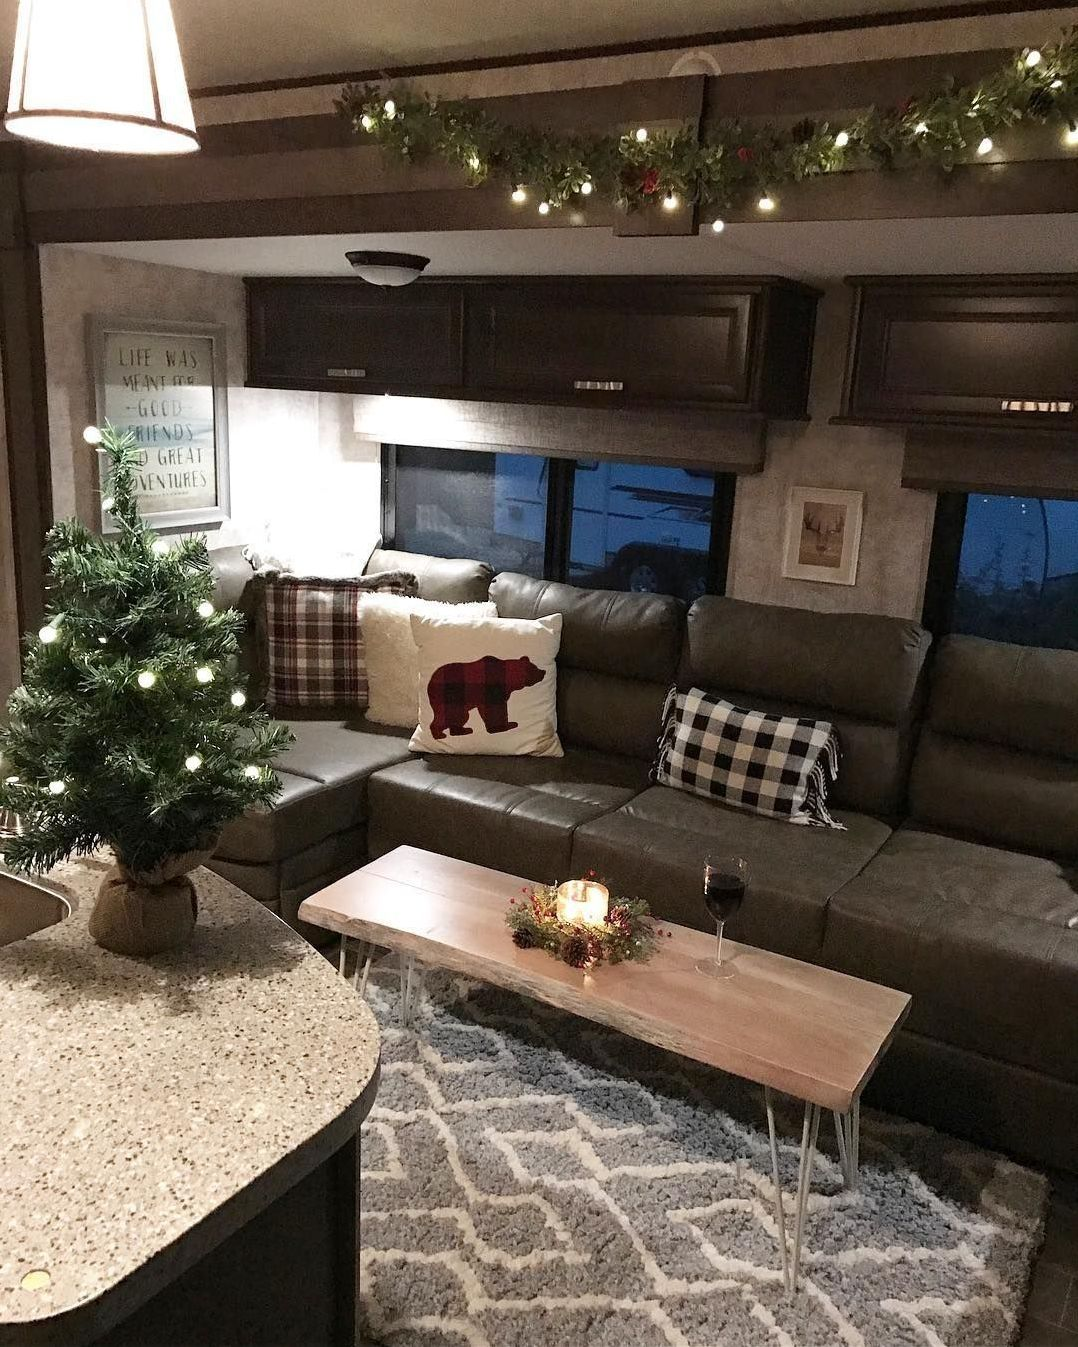 12 Camper Remodel Ideas That Will Inspire You Camperlife